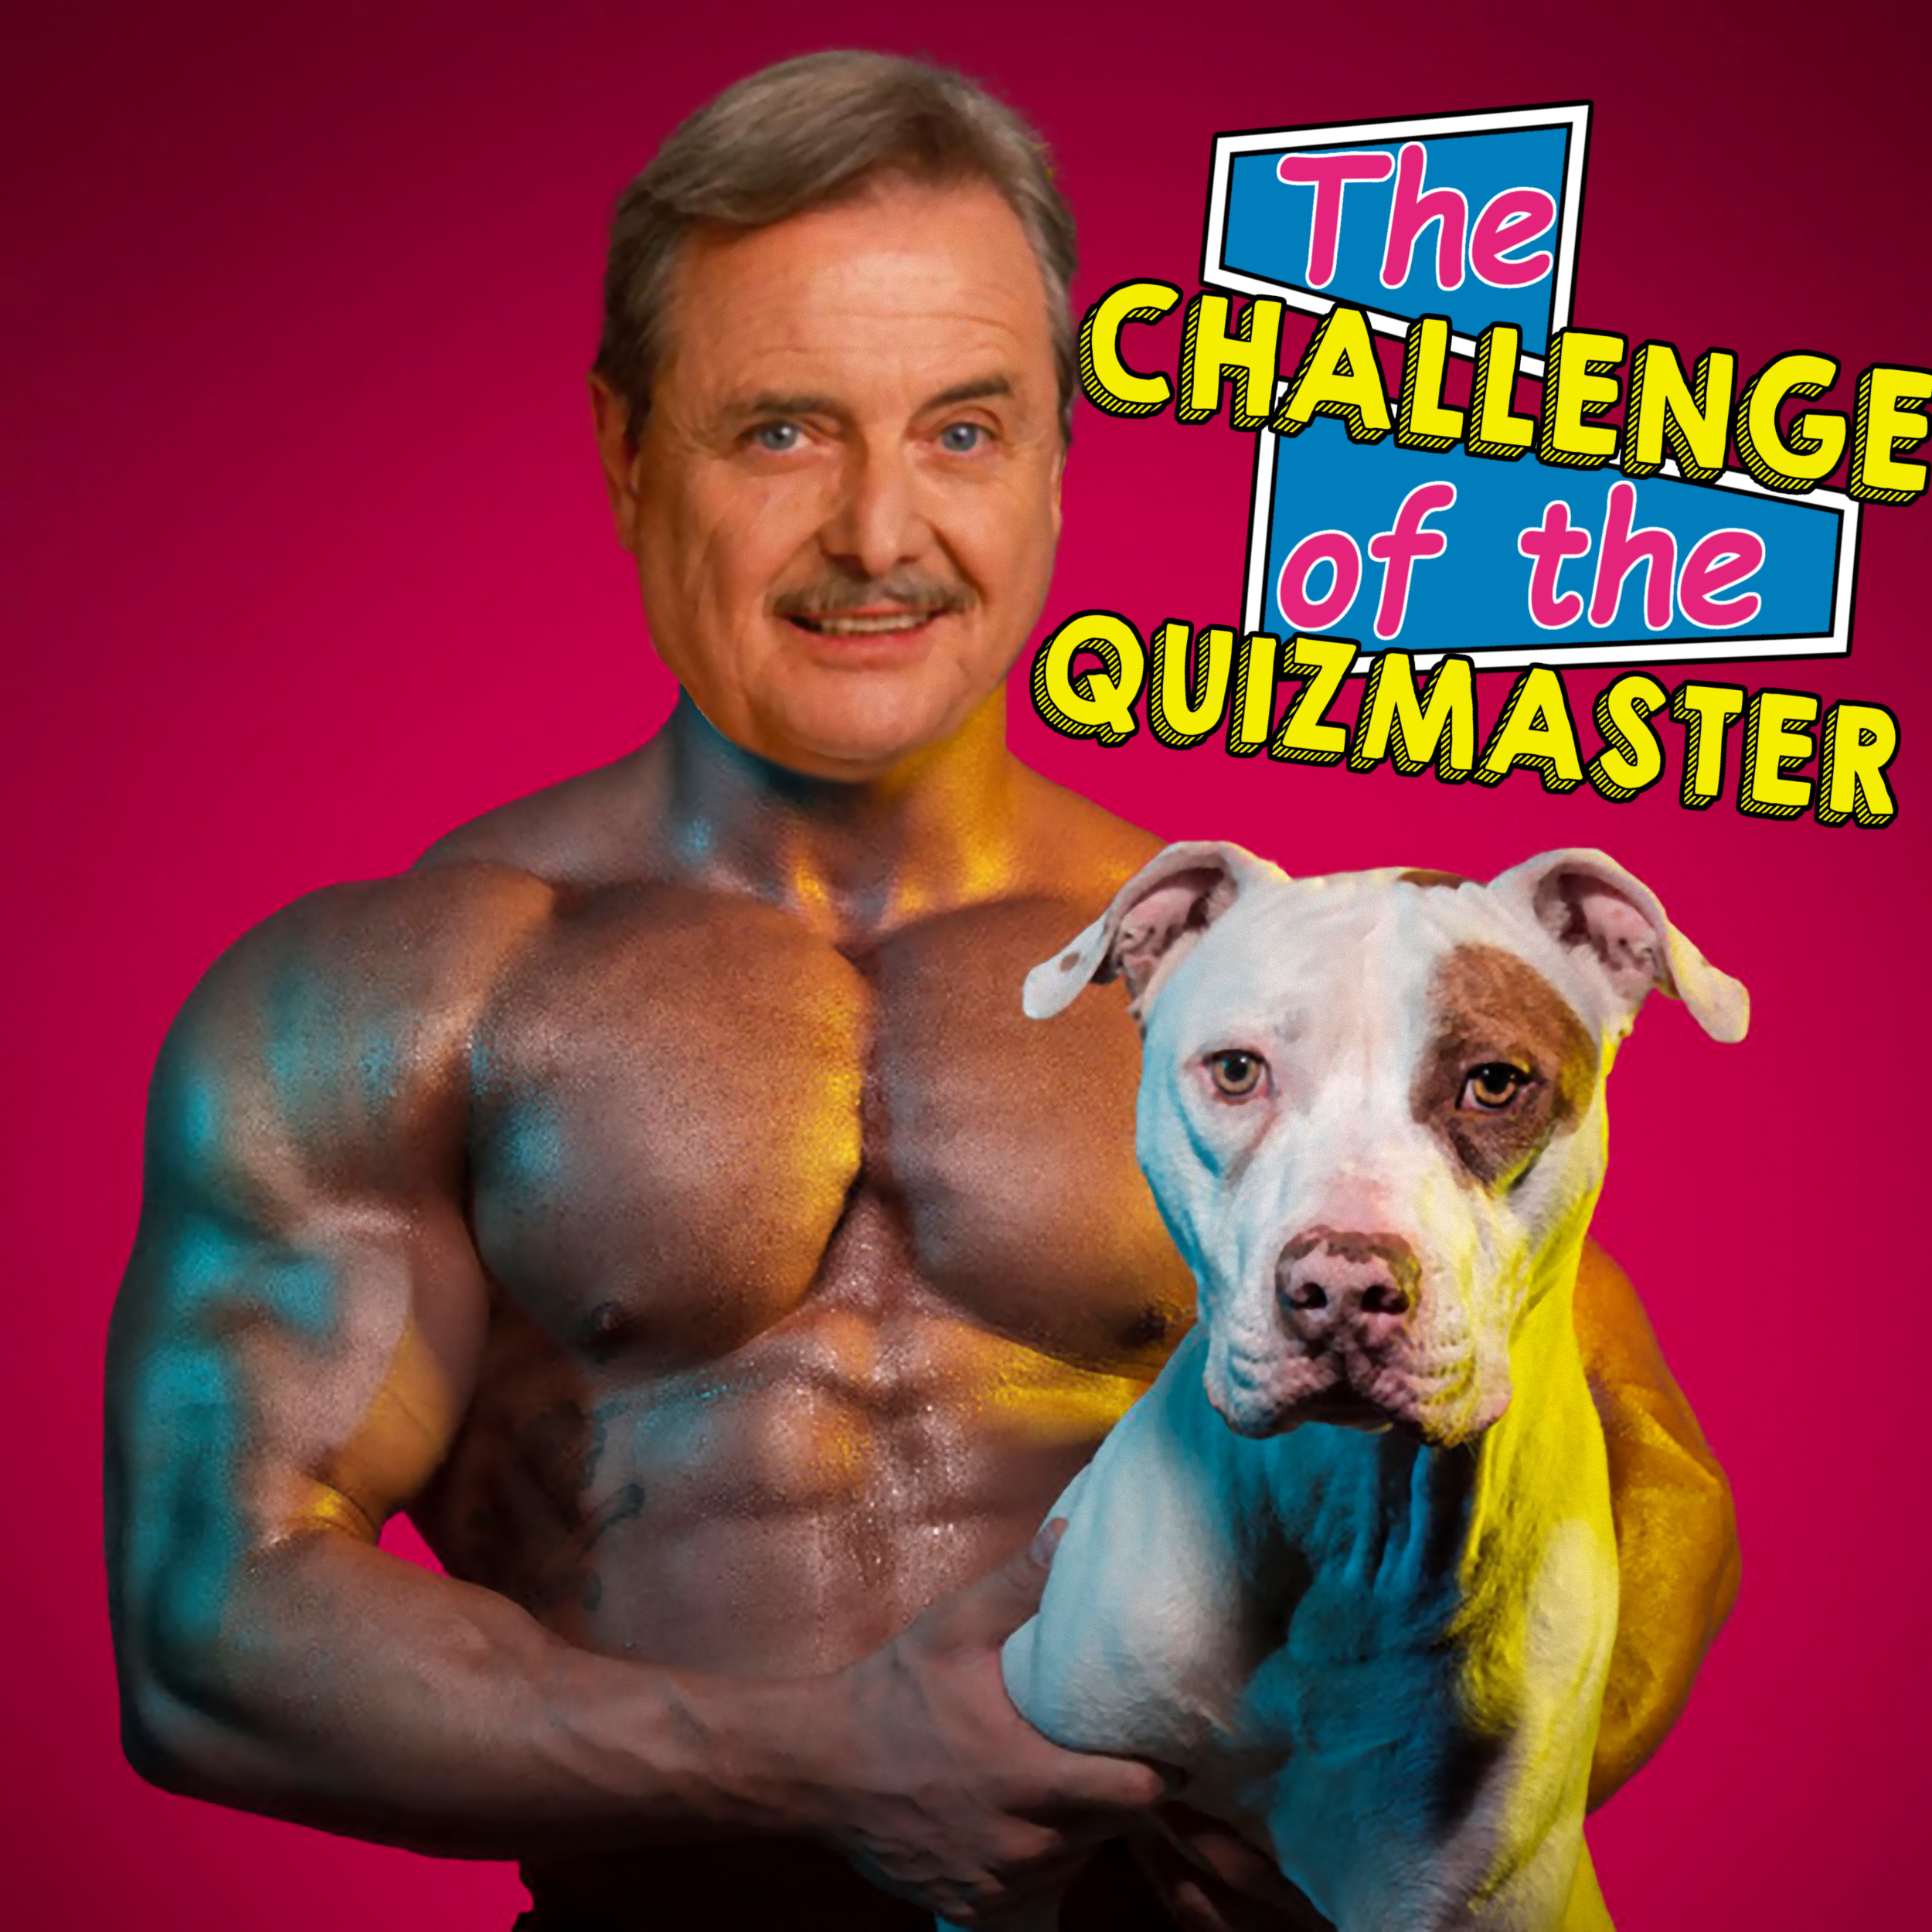 Which TGIF Hunk Should You Go Back and Bang REDUX - The Challenge of the Quizmaster